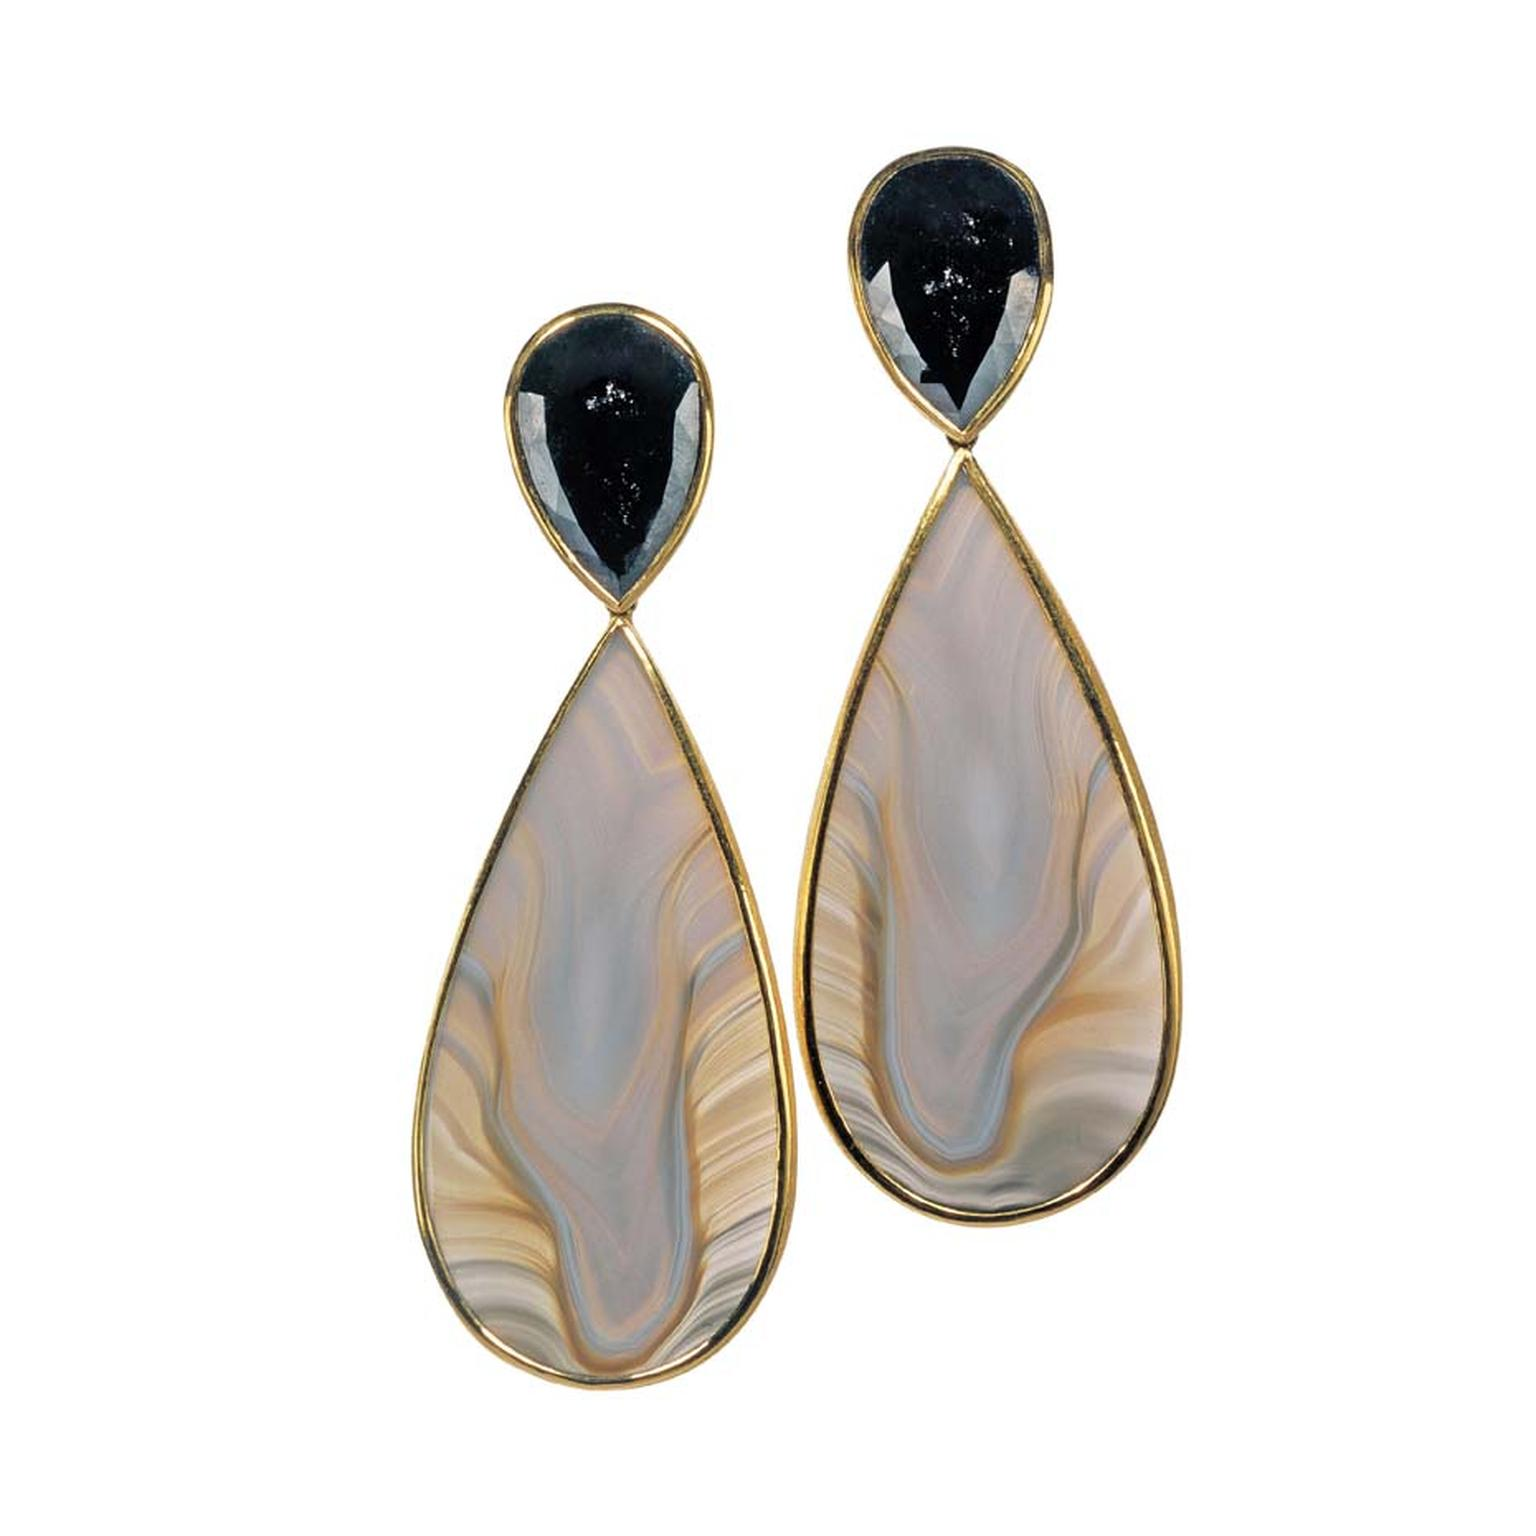 Zobel by Peter Schmid Agate earrings featuring black diamonds set in gold.